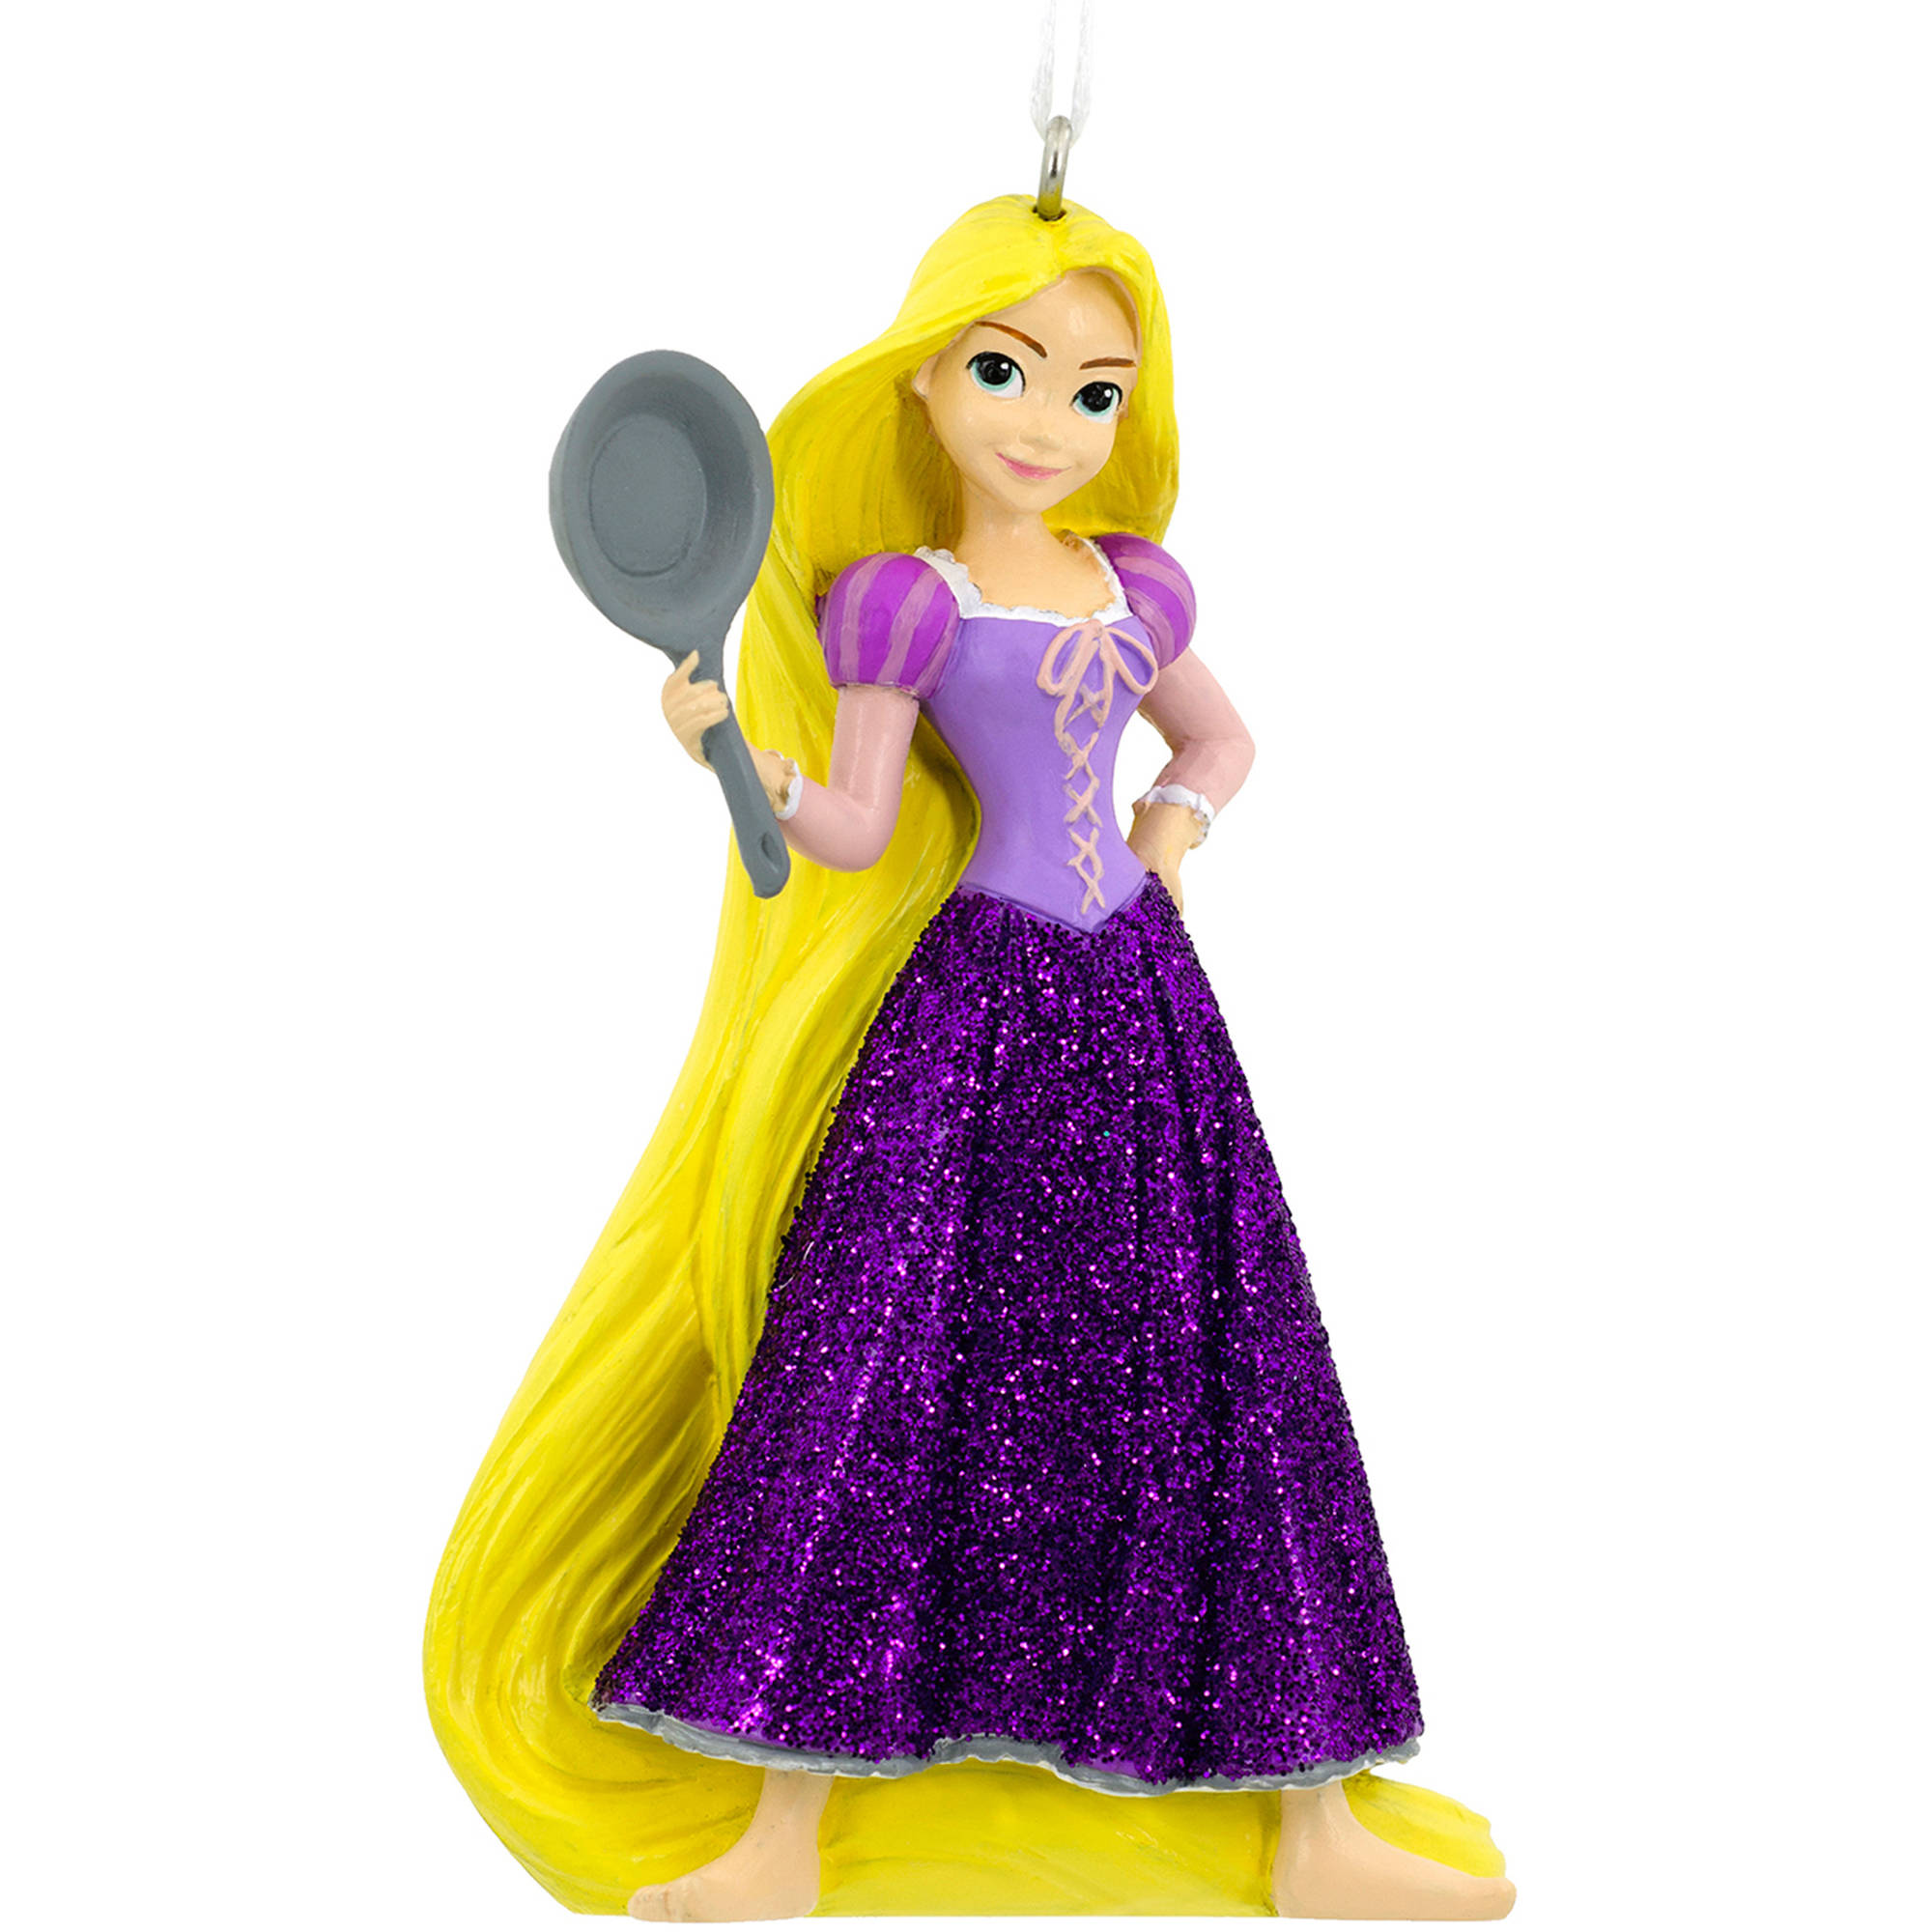 Hallmark Disney Tangled Rapunzel Ornament